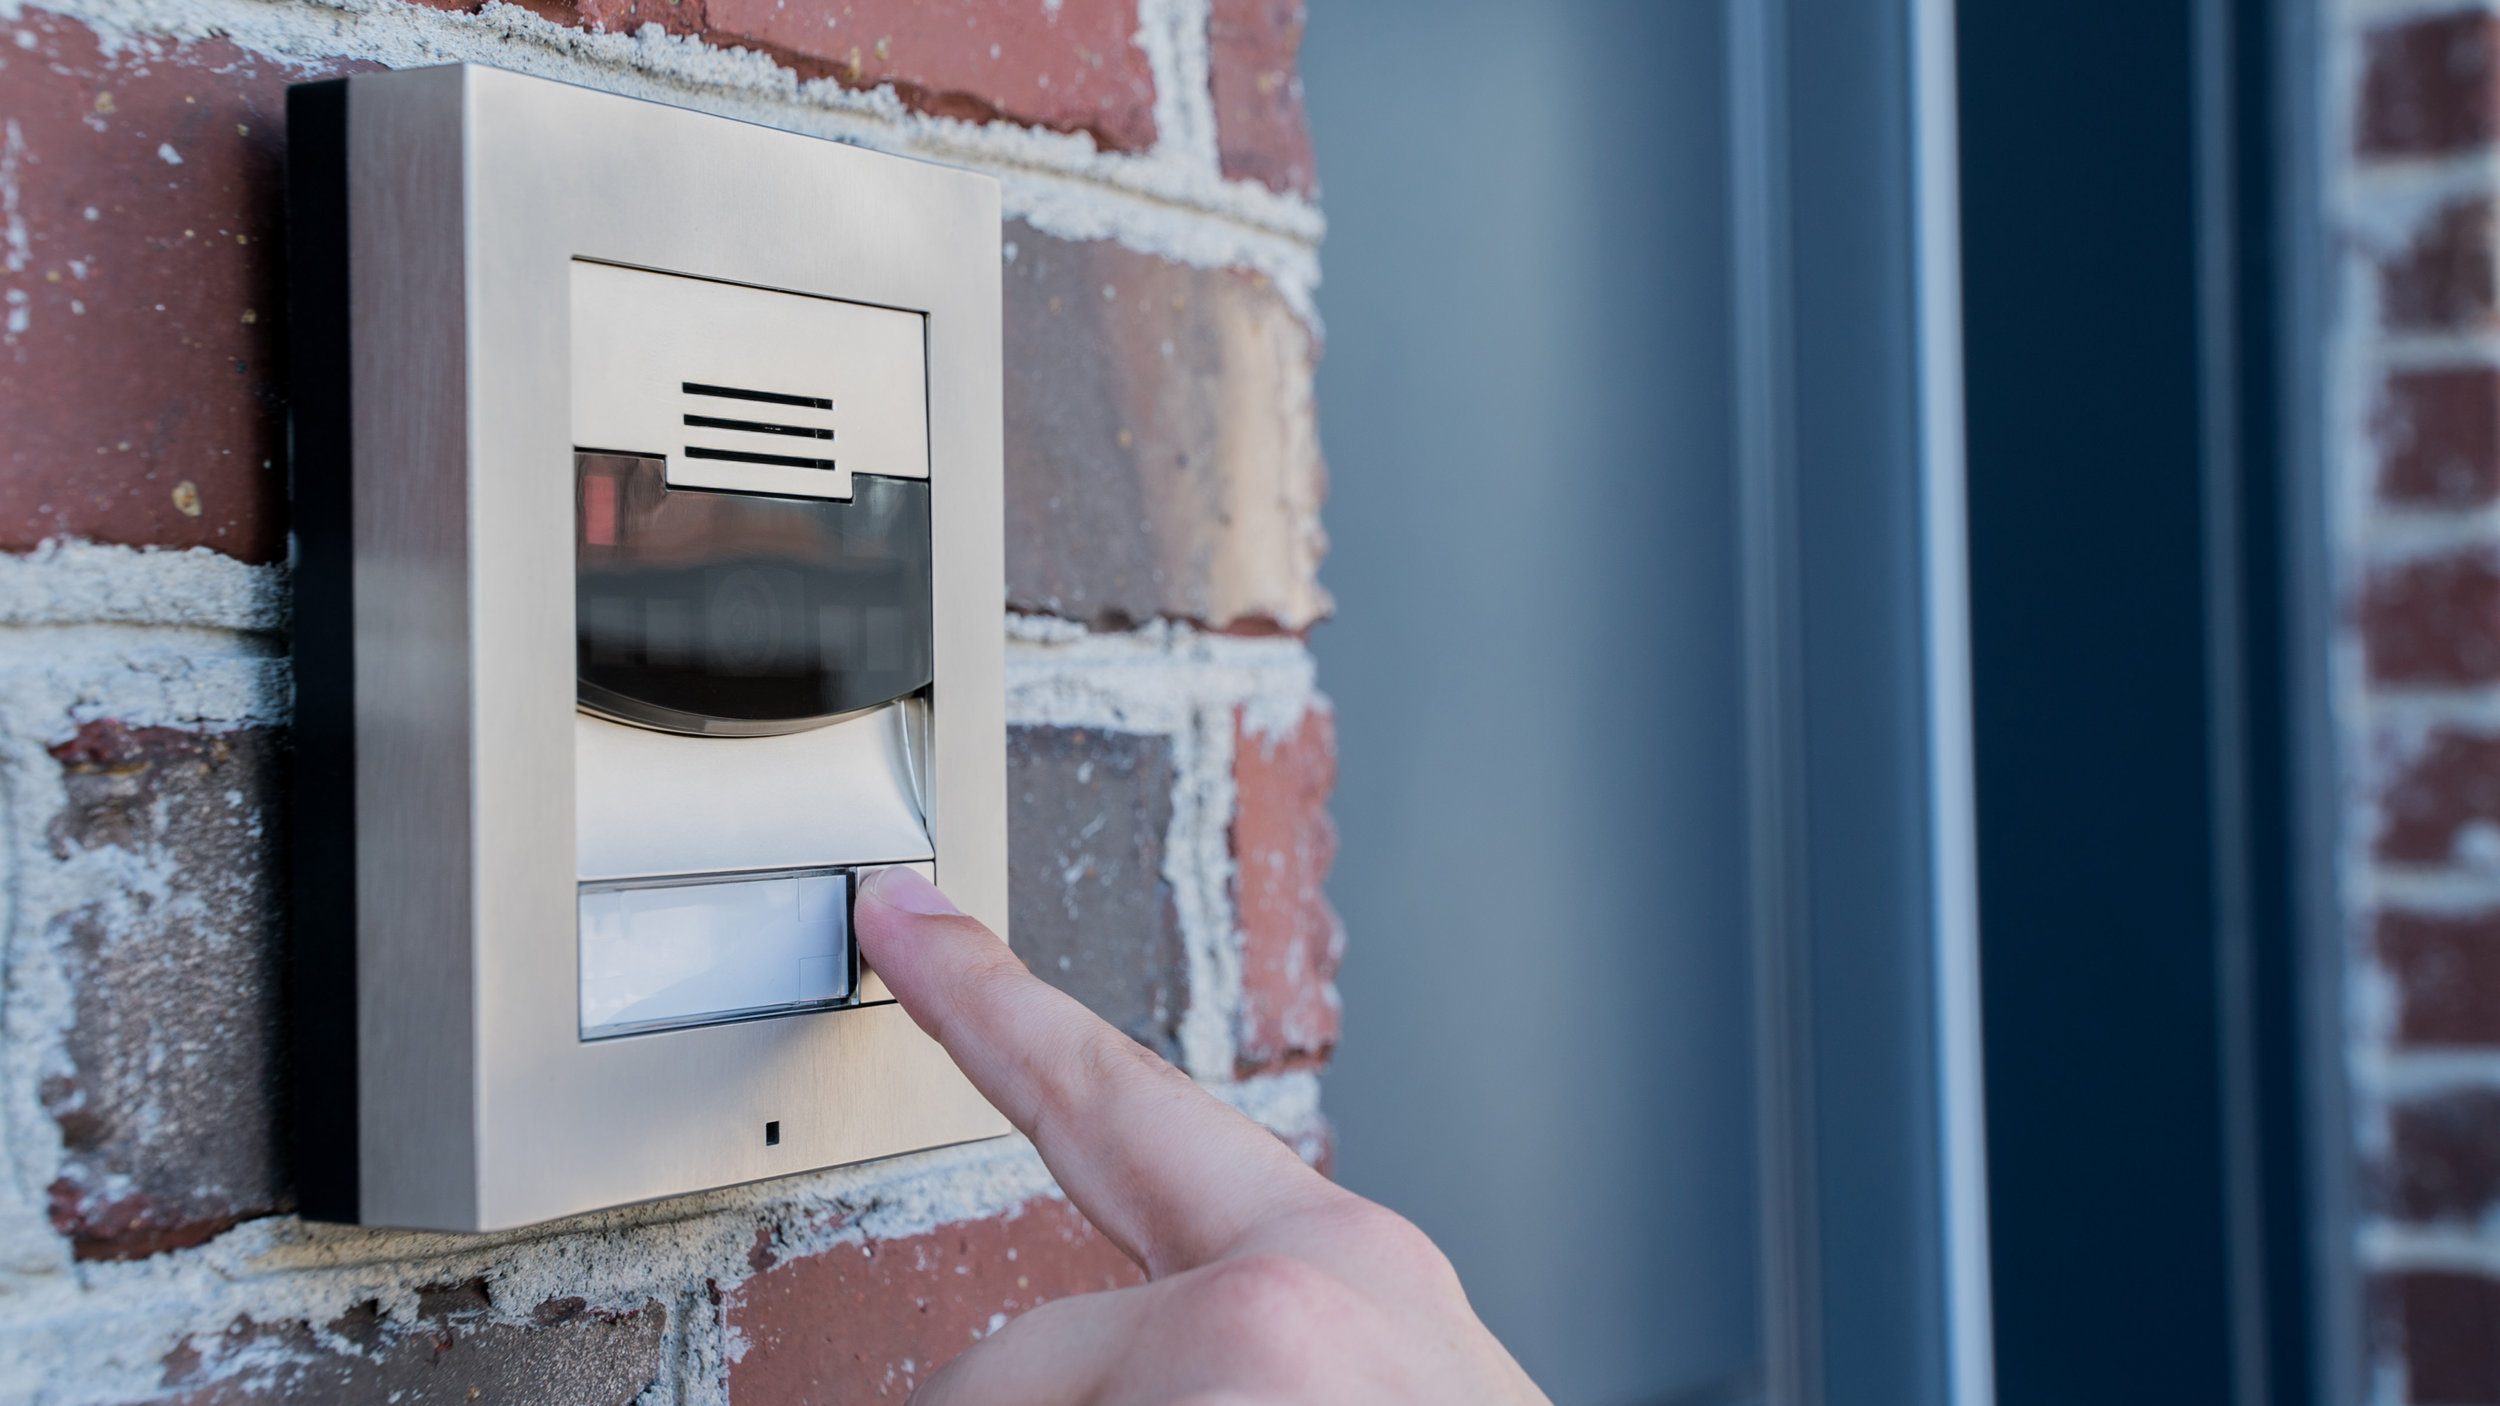 Smart_Home_Security_Video_Doorbell_Control4_Intercom_Anywhere_Red_Brick_Wall_Person_Pressing_Button